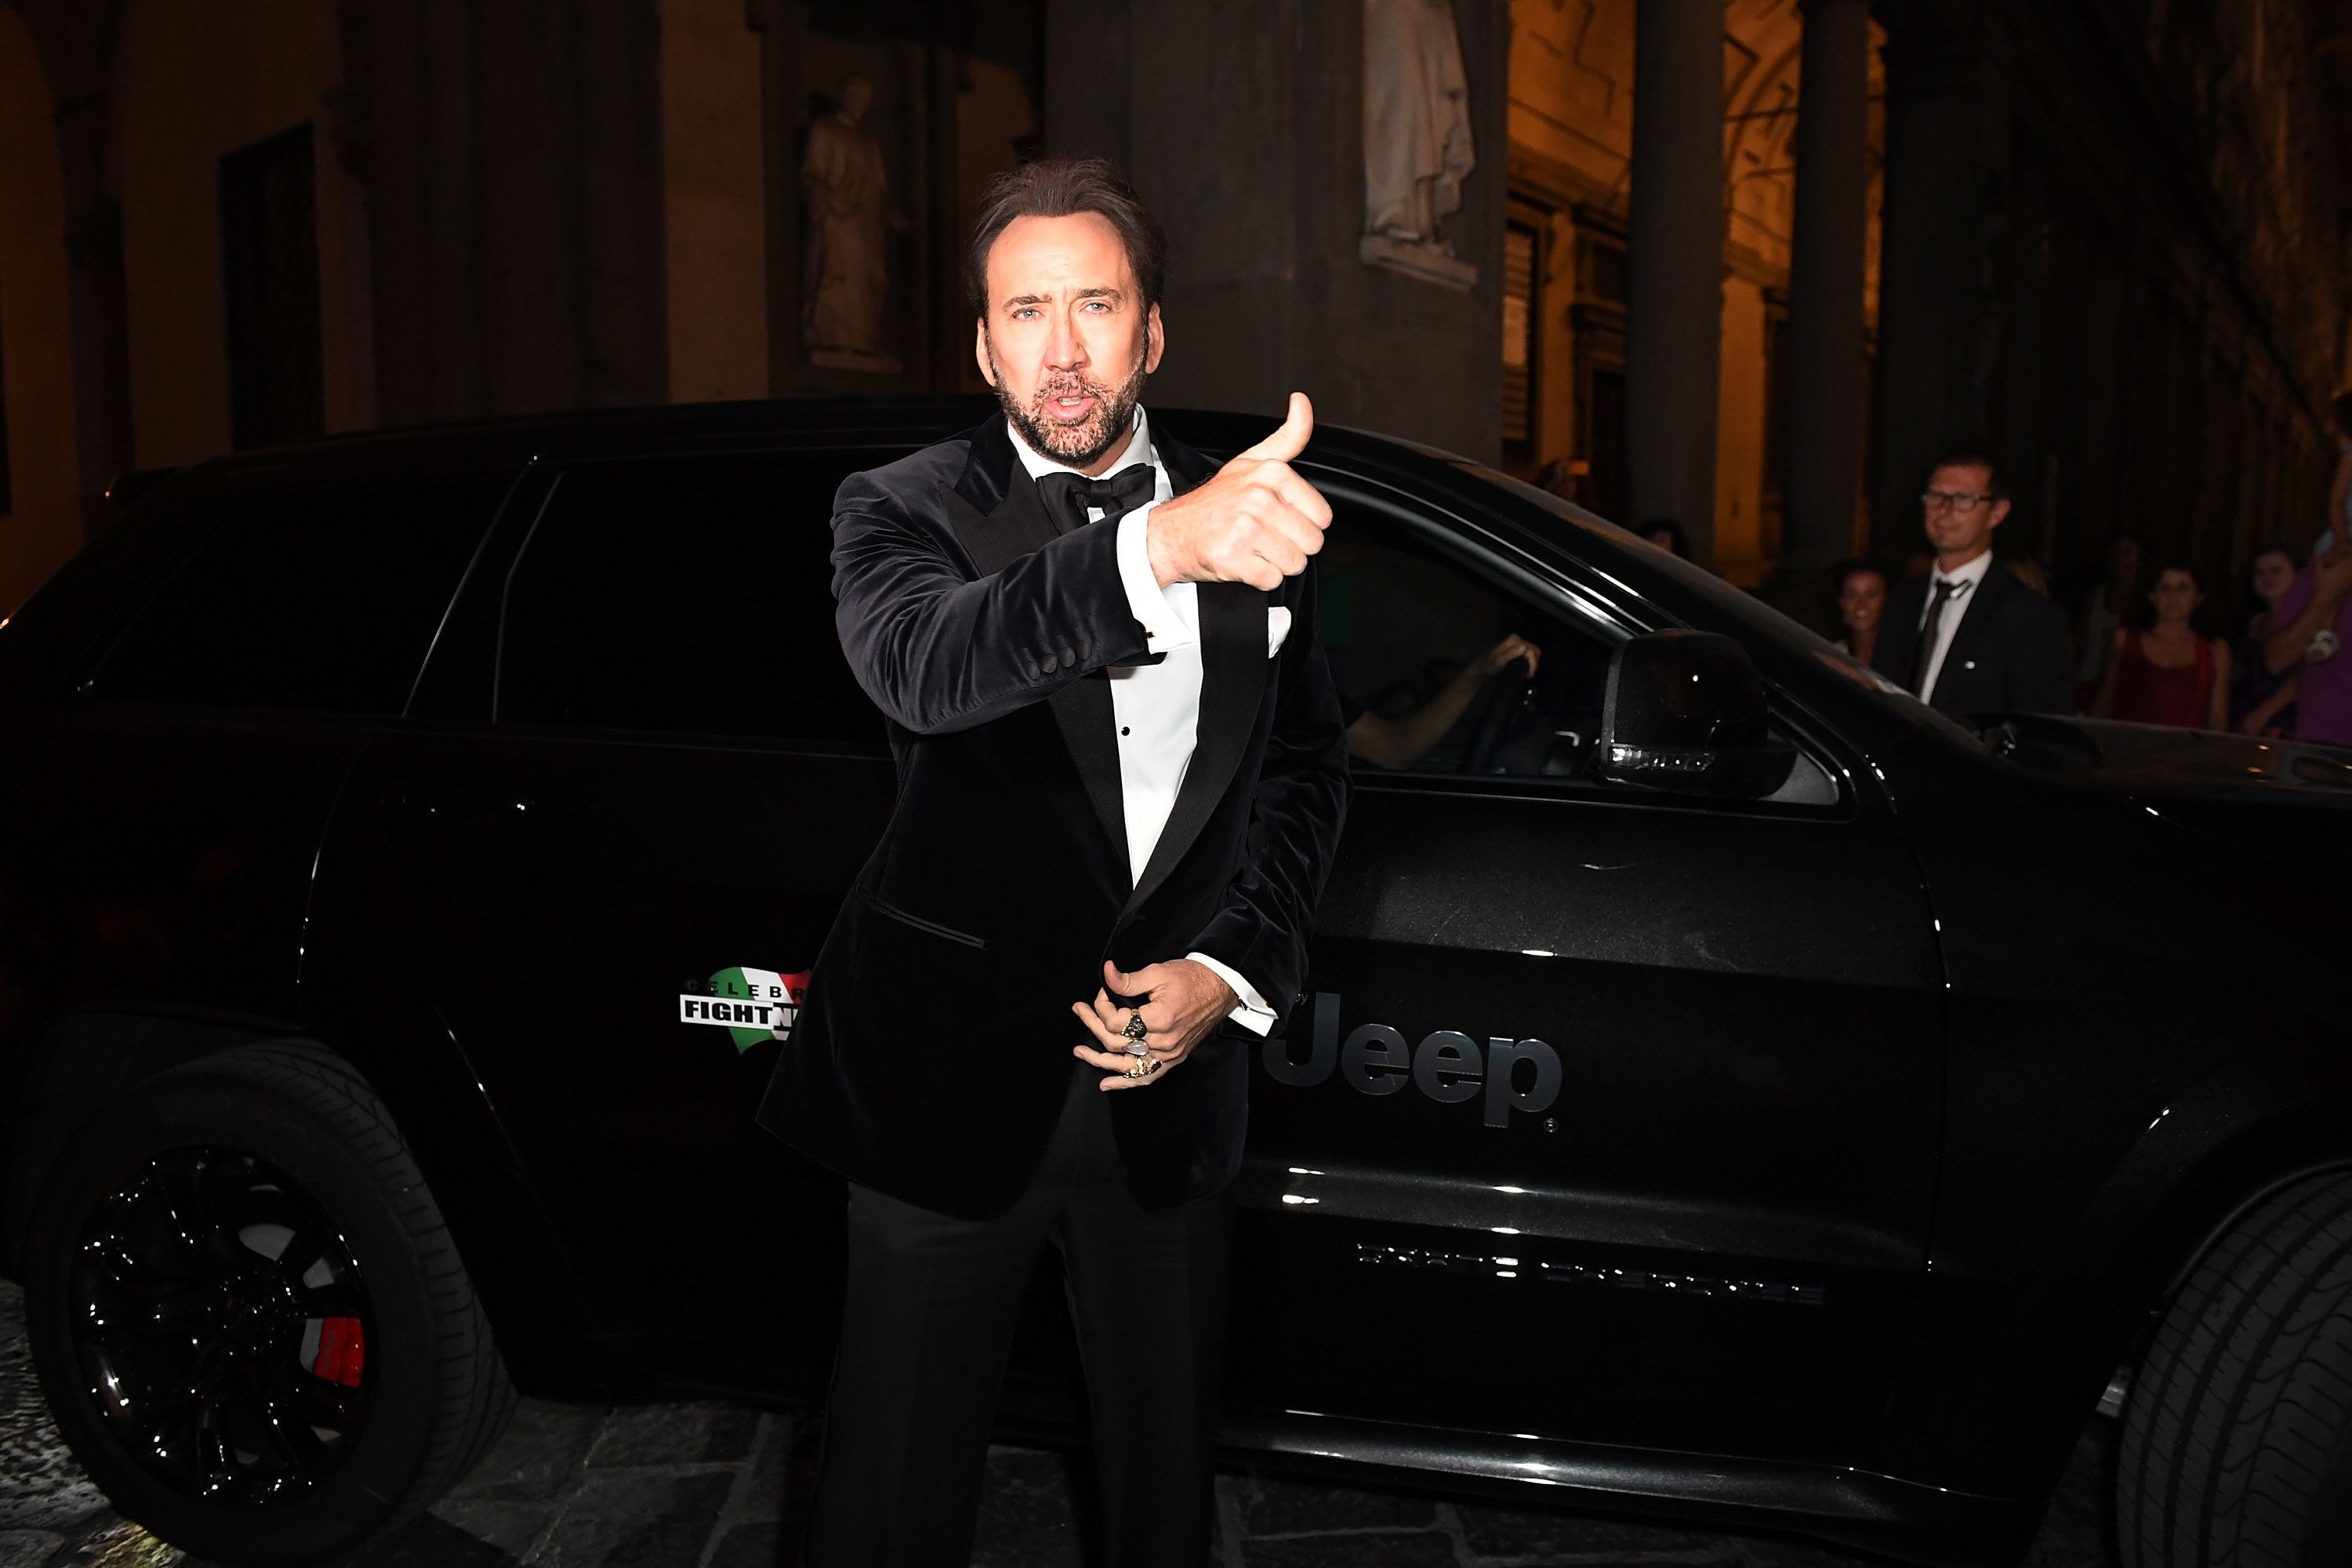 FLORENCE, ITALY - SEPTEMBER 11:  Nicolas Cage arrives at the Celebrity Fight Night Gala dinner on Jeep Cherokee on September 11, 2016 in Florence, Italy.  (Photo by Valerio Pennicino/Getty Images for Jeep)